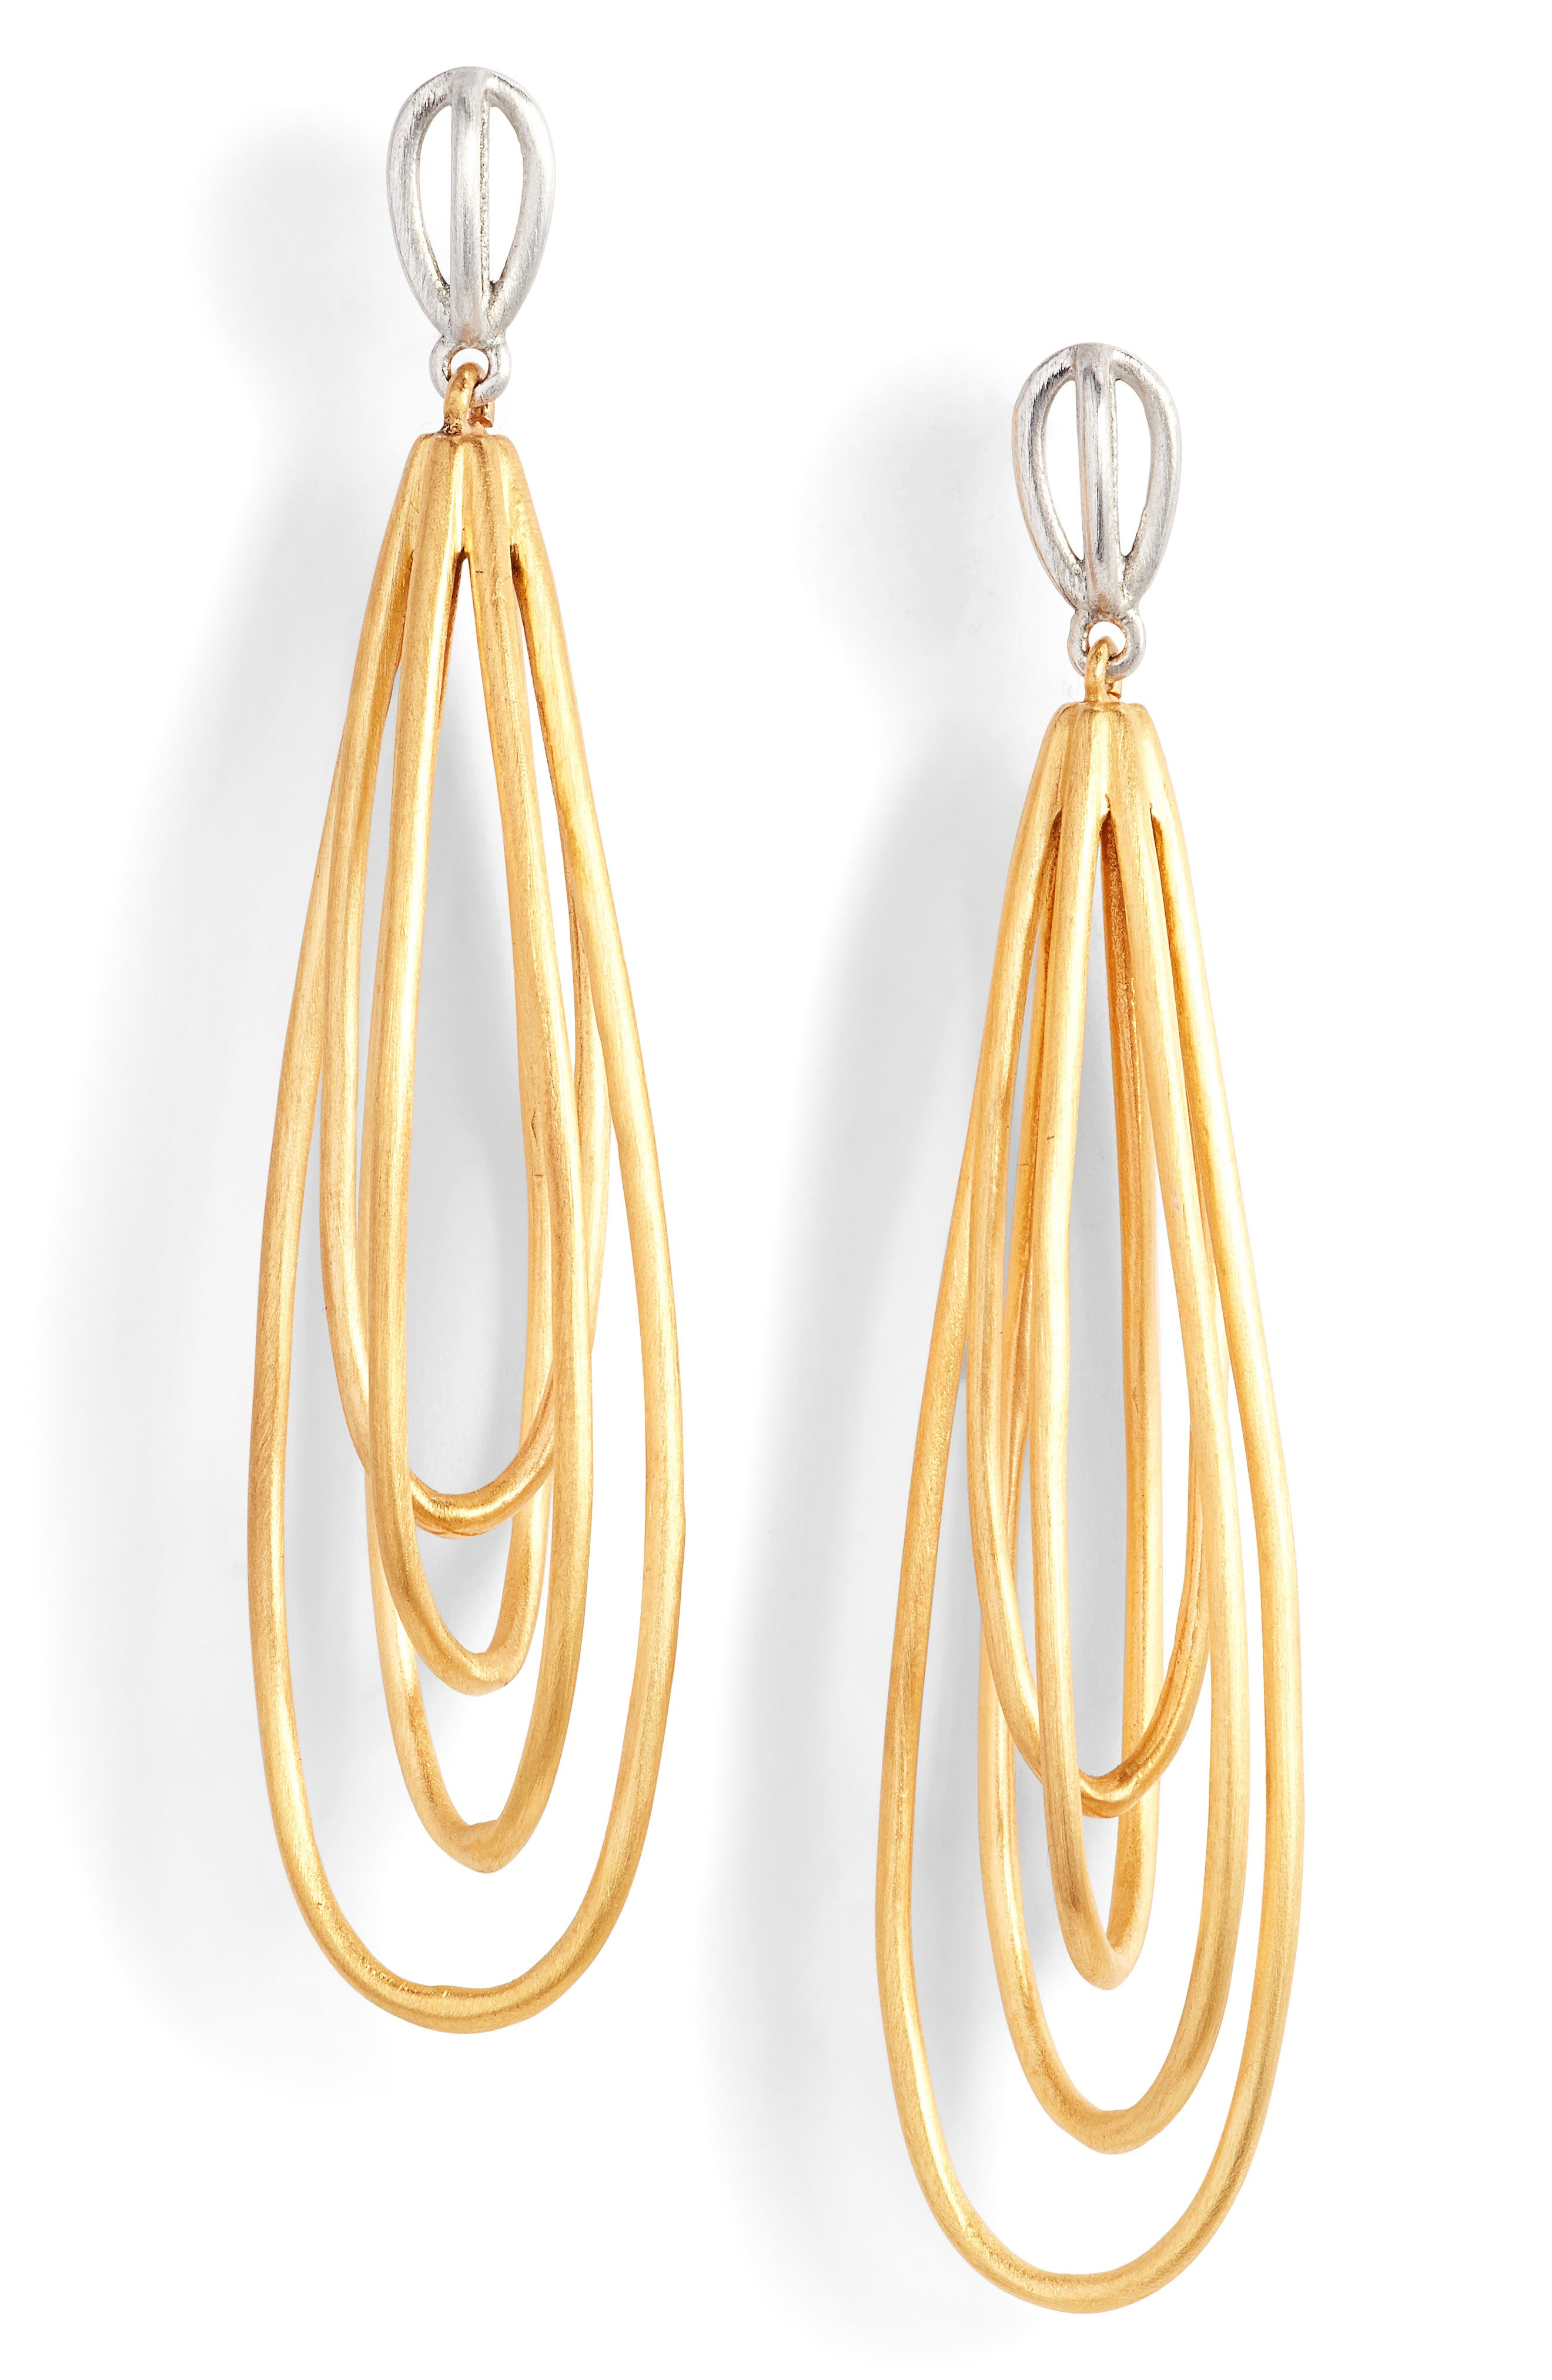 Inerlacing Drop Earrings,                             Main thumbnail 1, color,                             Gold/ Silver